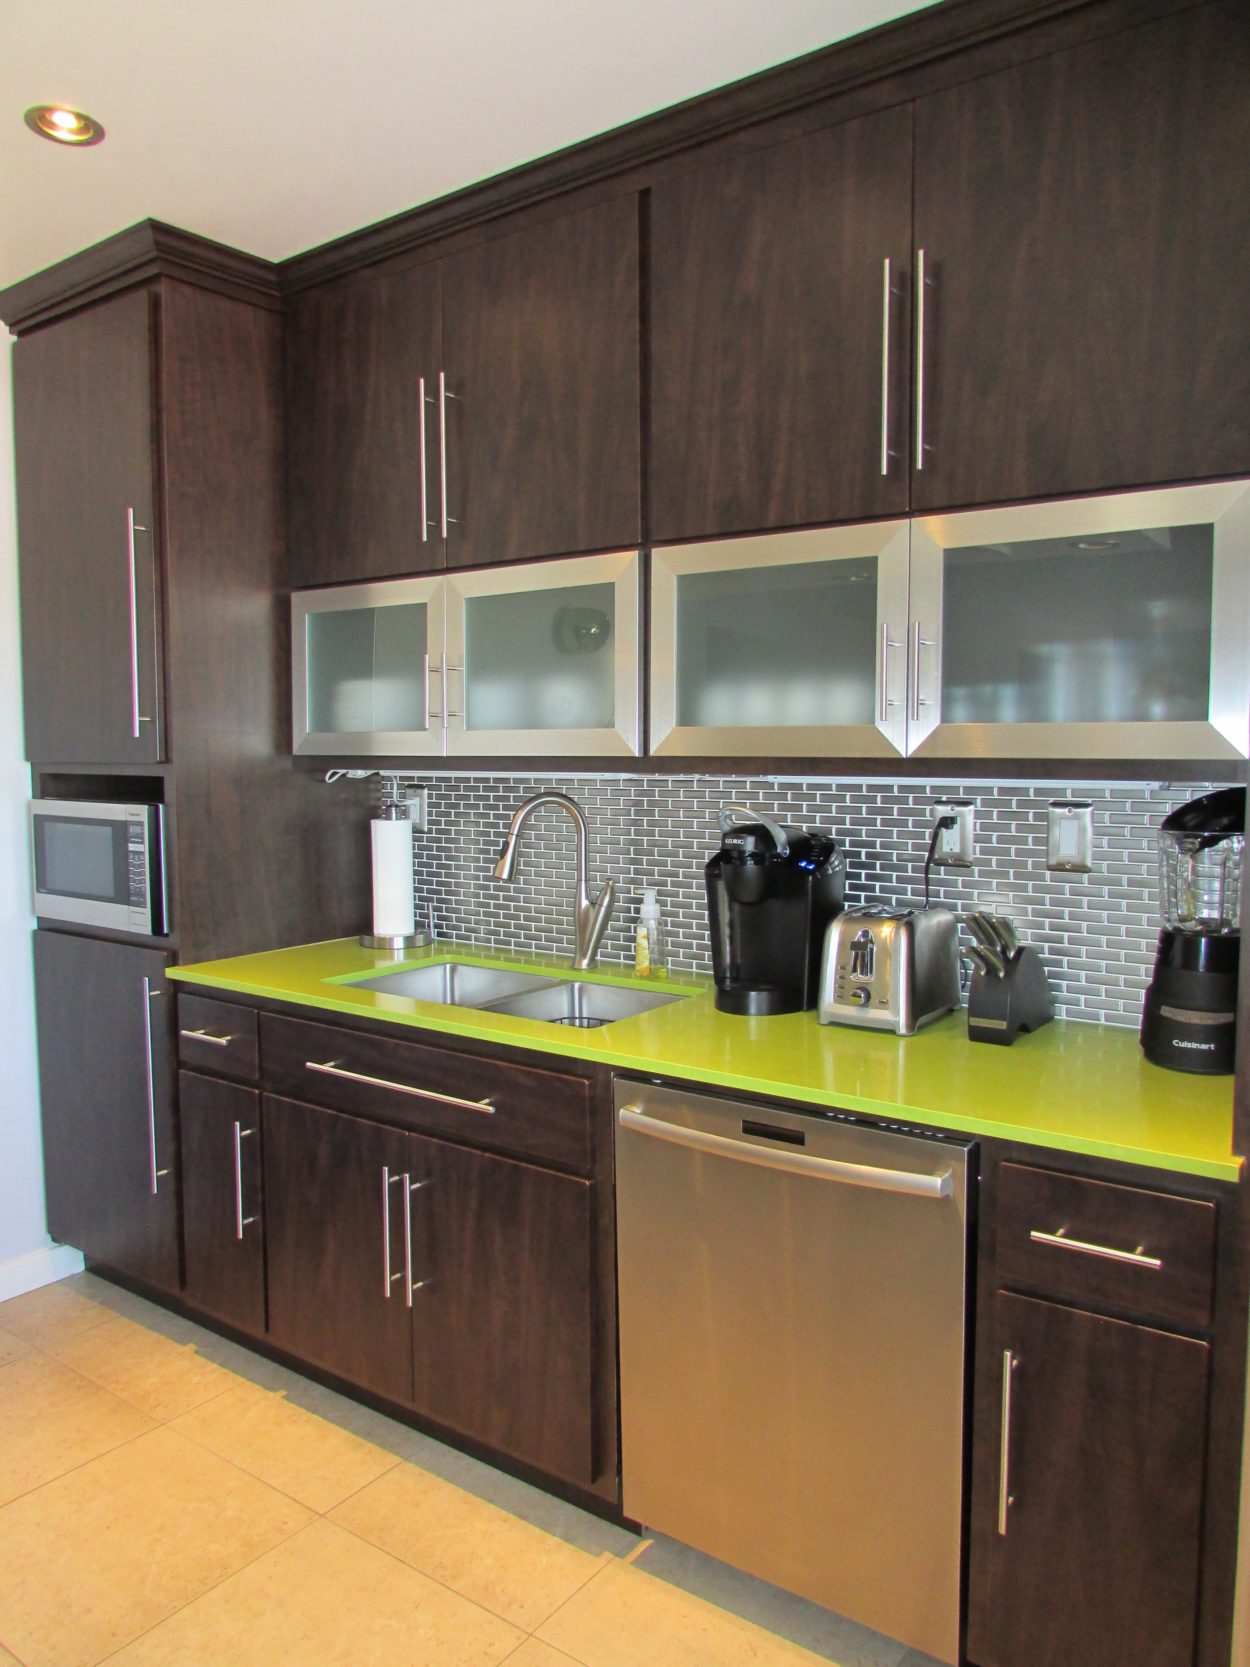 How To Set Up A Vacation Rental Home Kitchen Moxie Girl